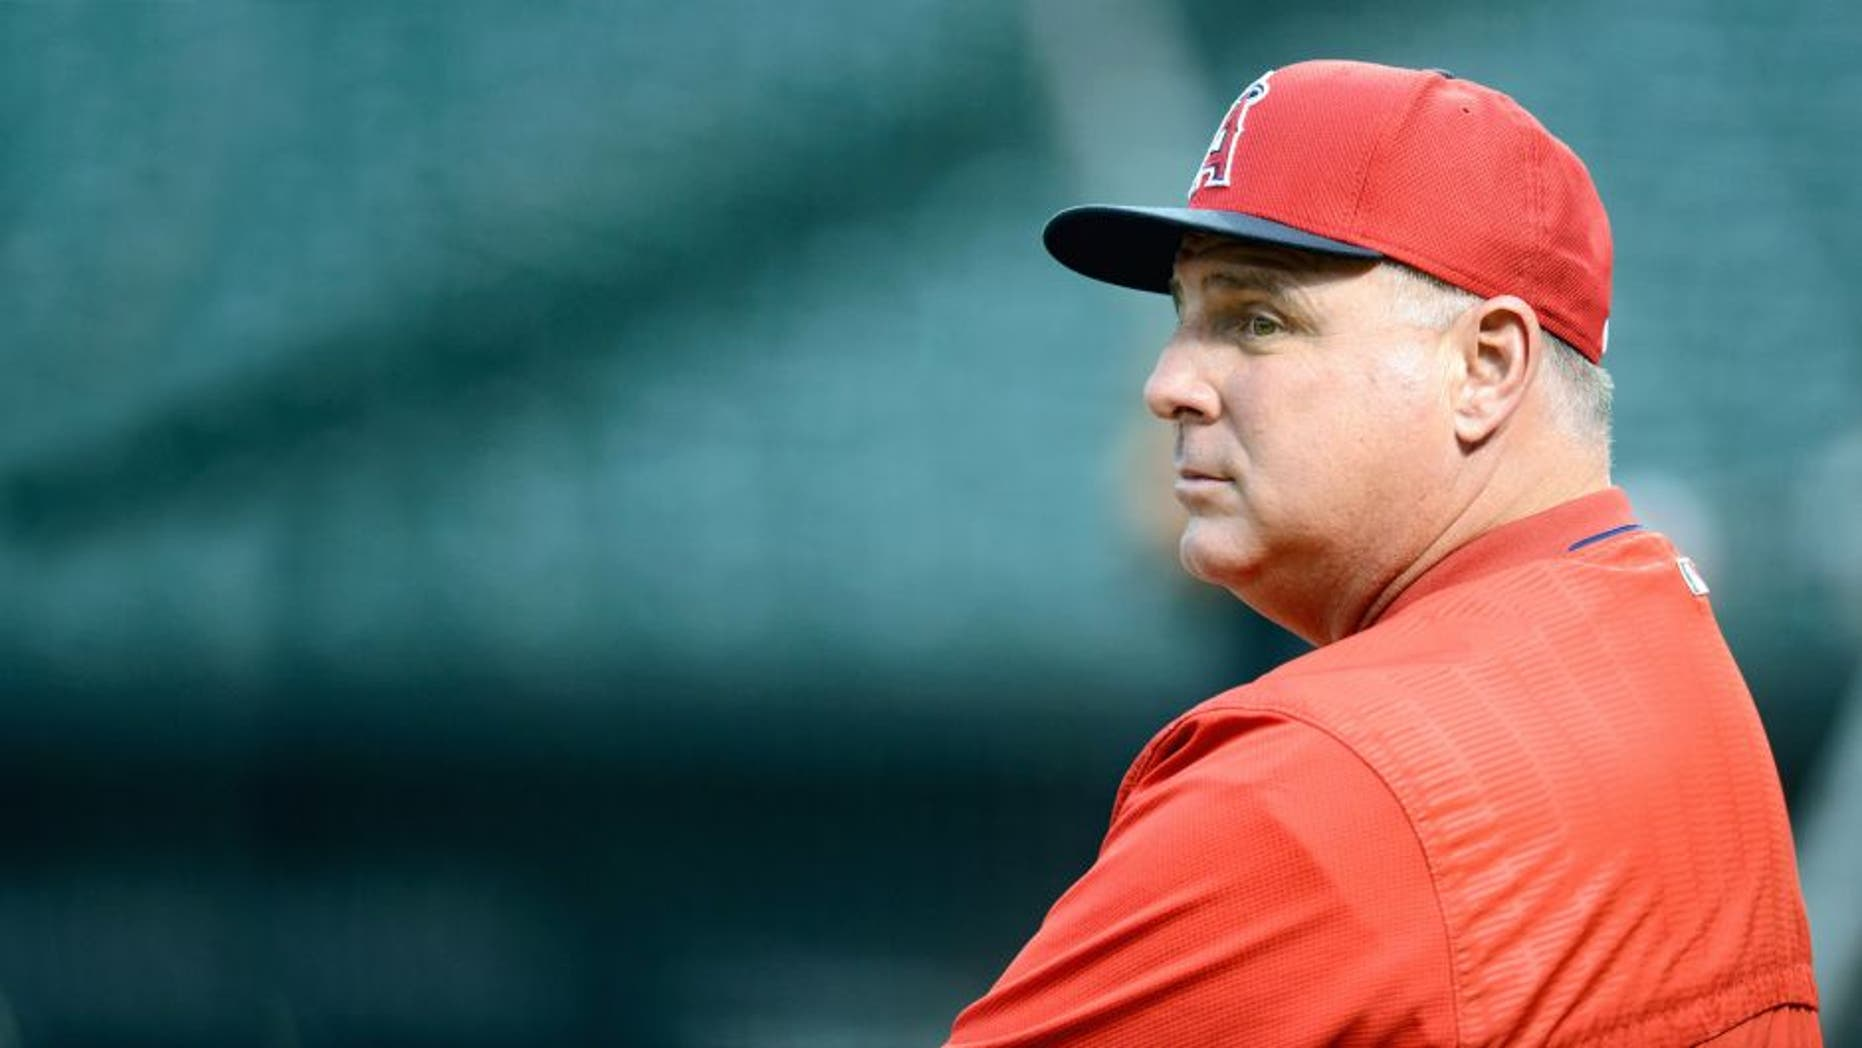 BALTIMORE, MD - MAY 16: Manager Mike Scioscia #14 of the Los Angeles Angels watches batting practice before the game against the Baltimore Orioles at Oriole Park at Camden Yards on May 16, 2015 in Baltimore, Maryland. (Photo by G Fiume/Getty Images)